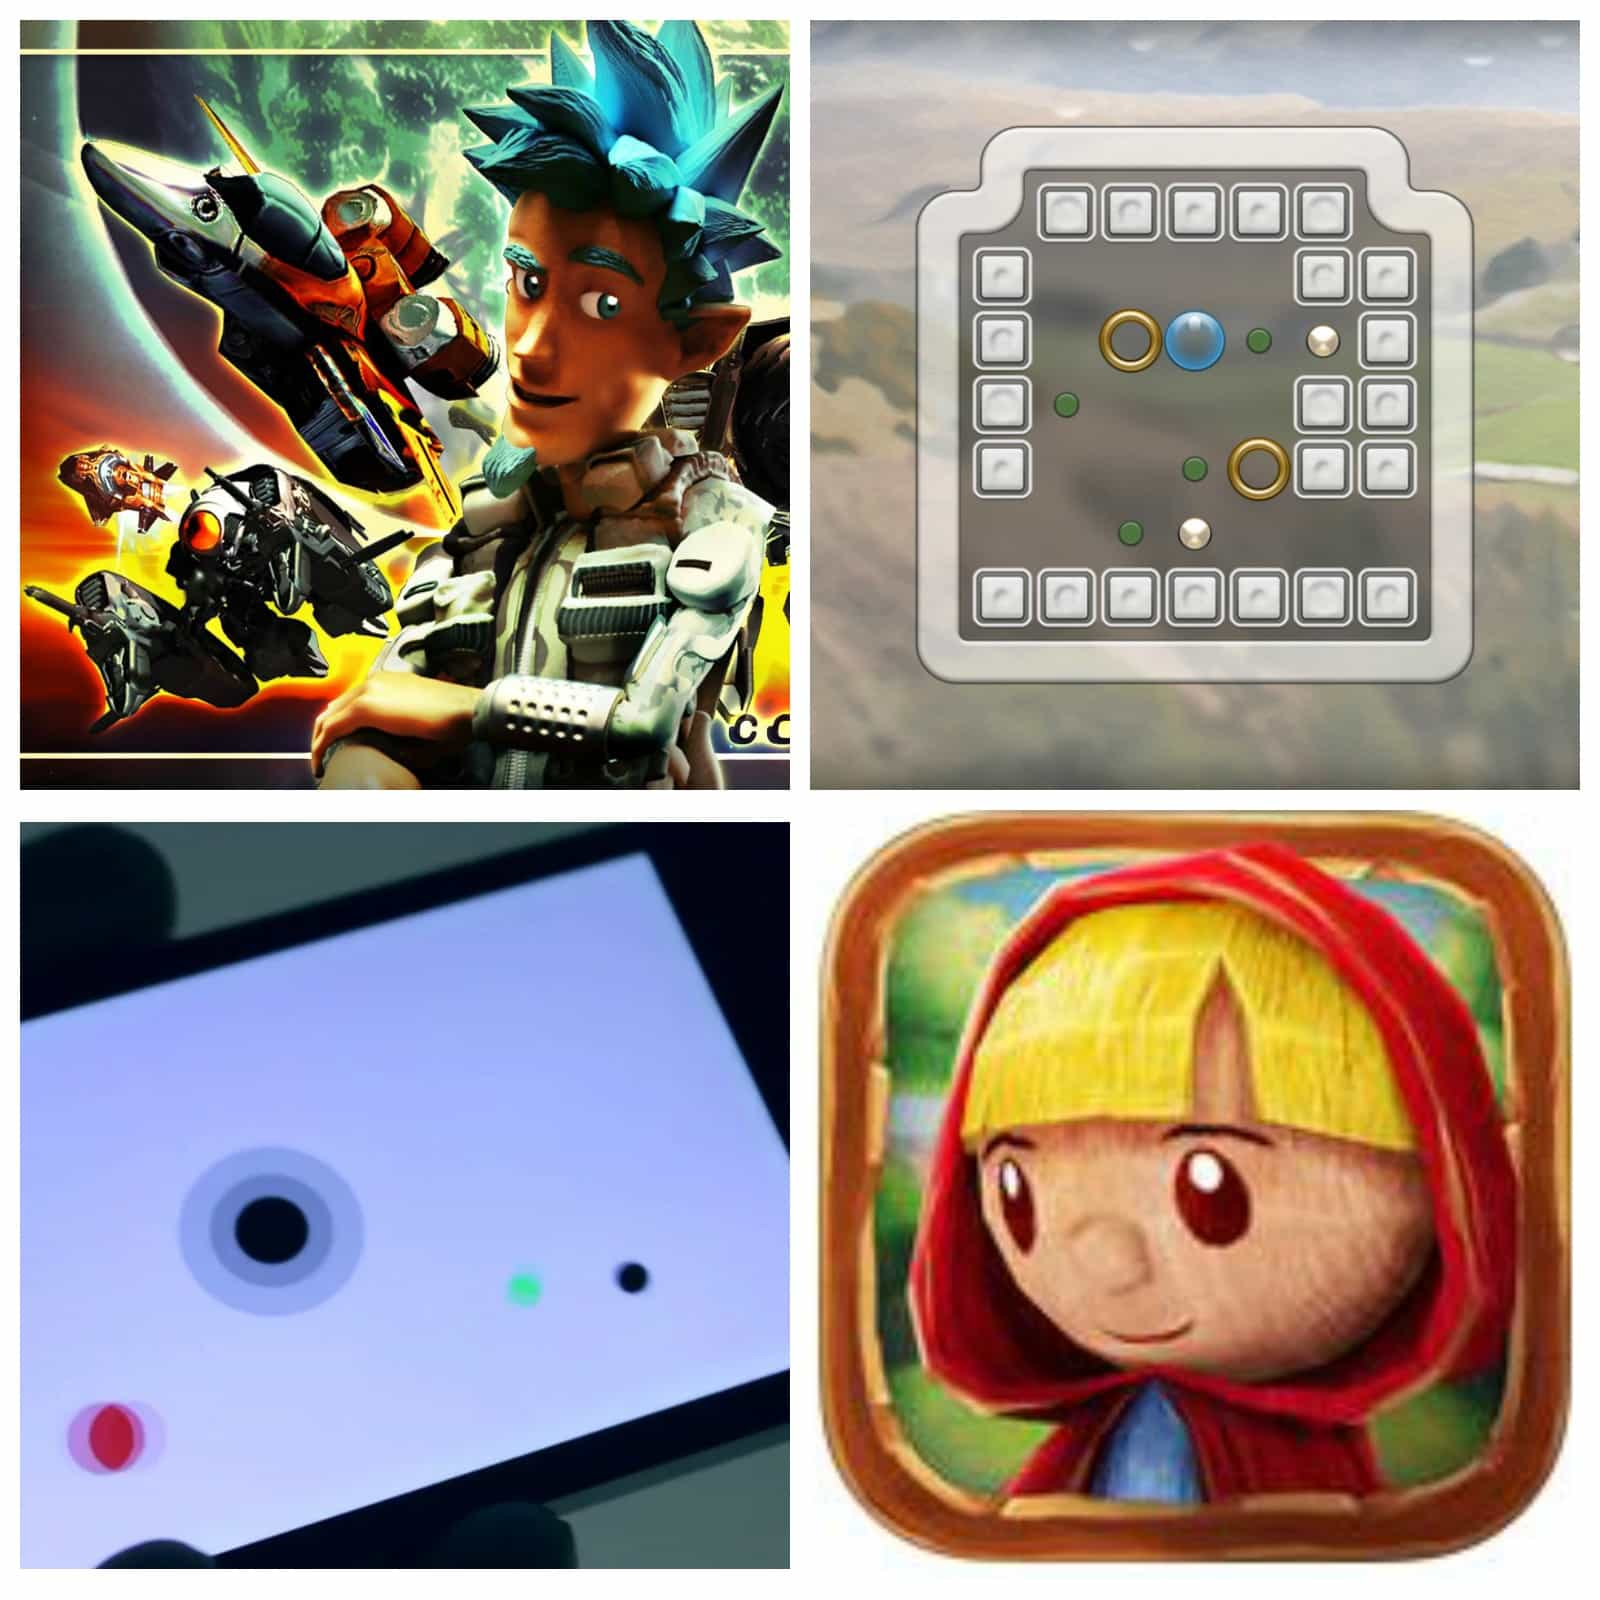 Grab these free iOS games before the prices go up!